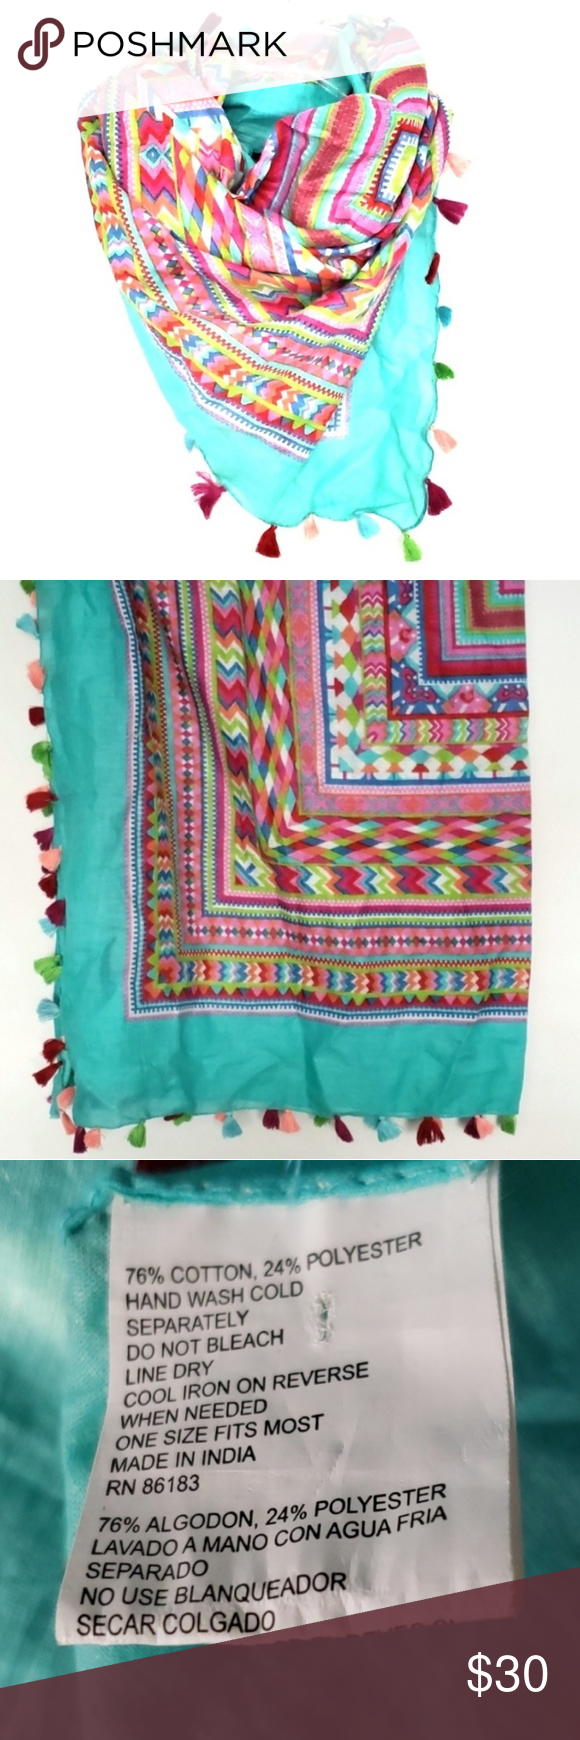 Multicolored Turquoise Tribal Print Pom Pom Scarf Fabulous Multicolored Turquoise Tribal Geometric Print Pom Pom Scarf.   Measures 42 inches x 41.5 inches  Preowned Excellent Condition   03102019R05012019 Accessories Scarves & Wraps